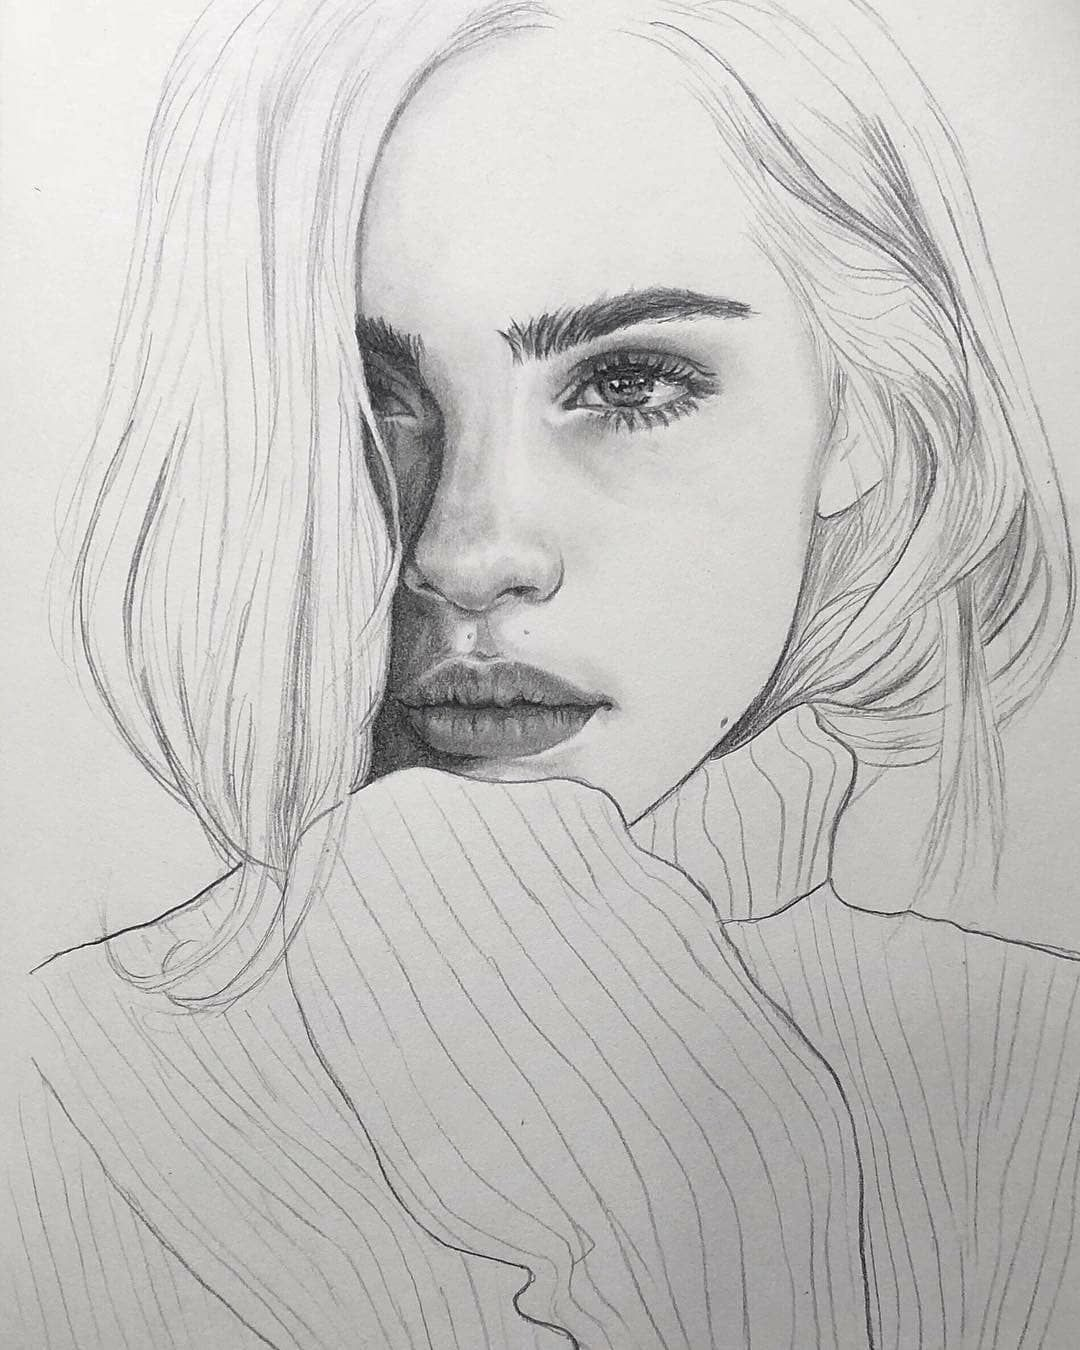 So beautiful art girl pencil drawing girl face drawing pencil portrait drawing person